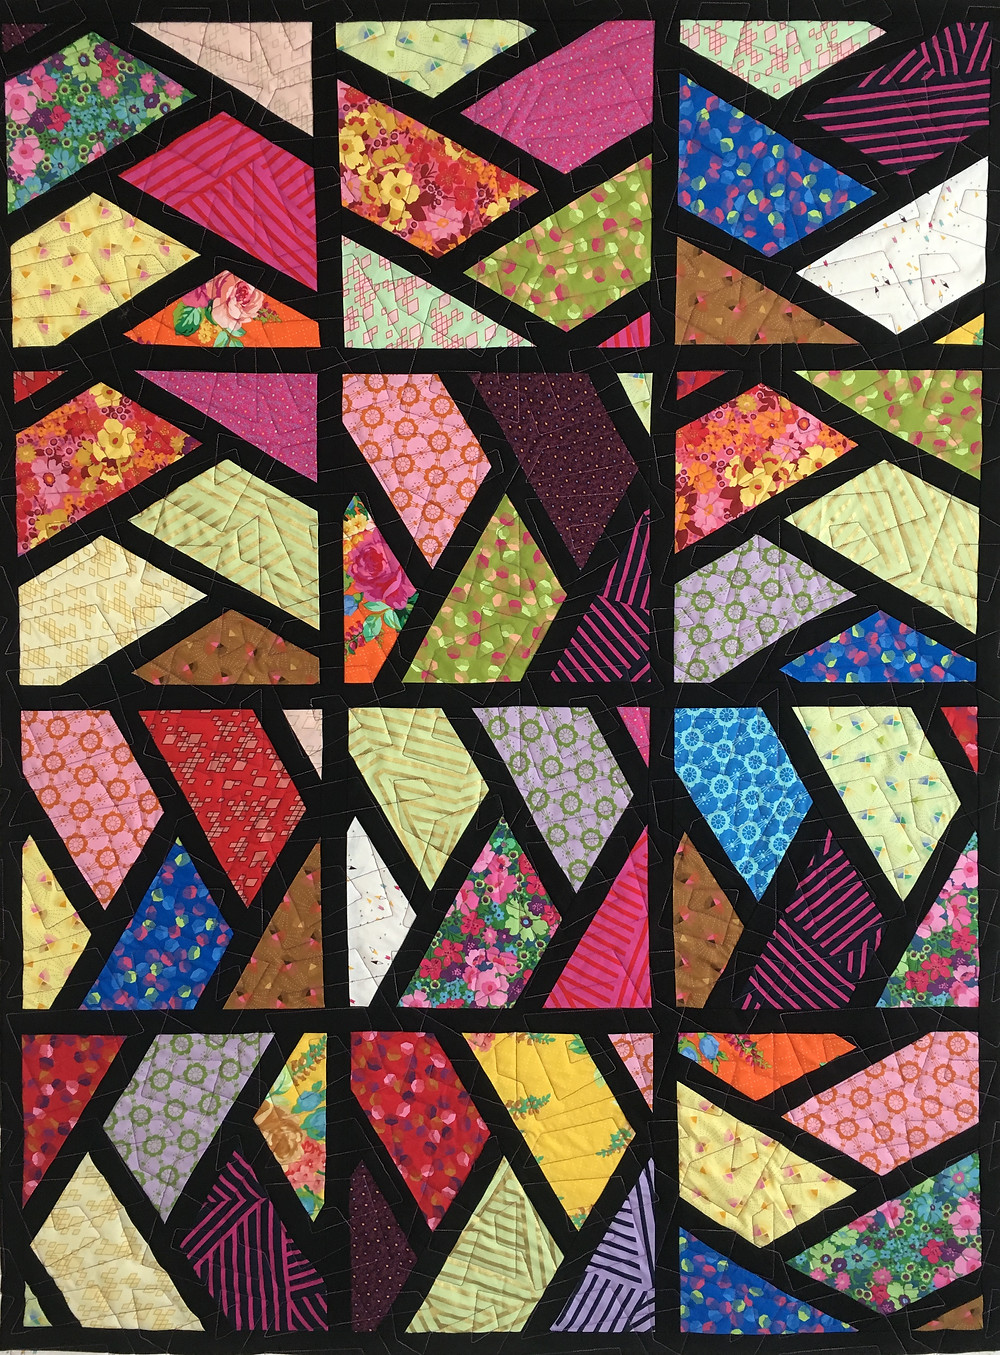 Sashed Half Hexi Quilt by Cindy Lovelace